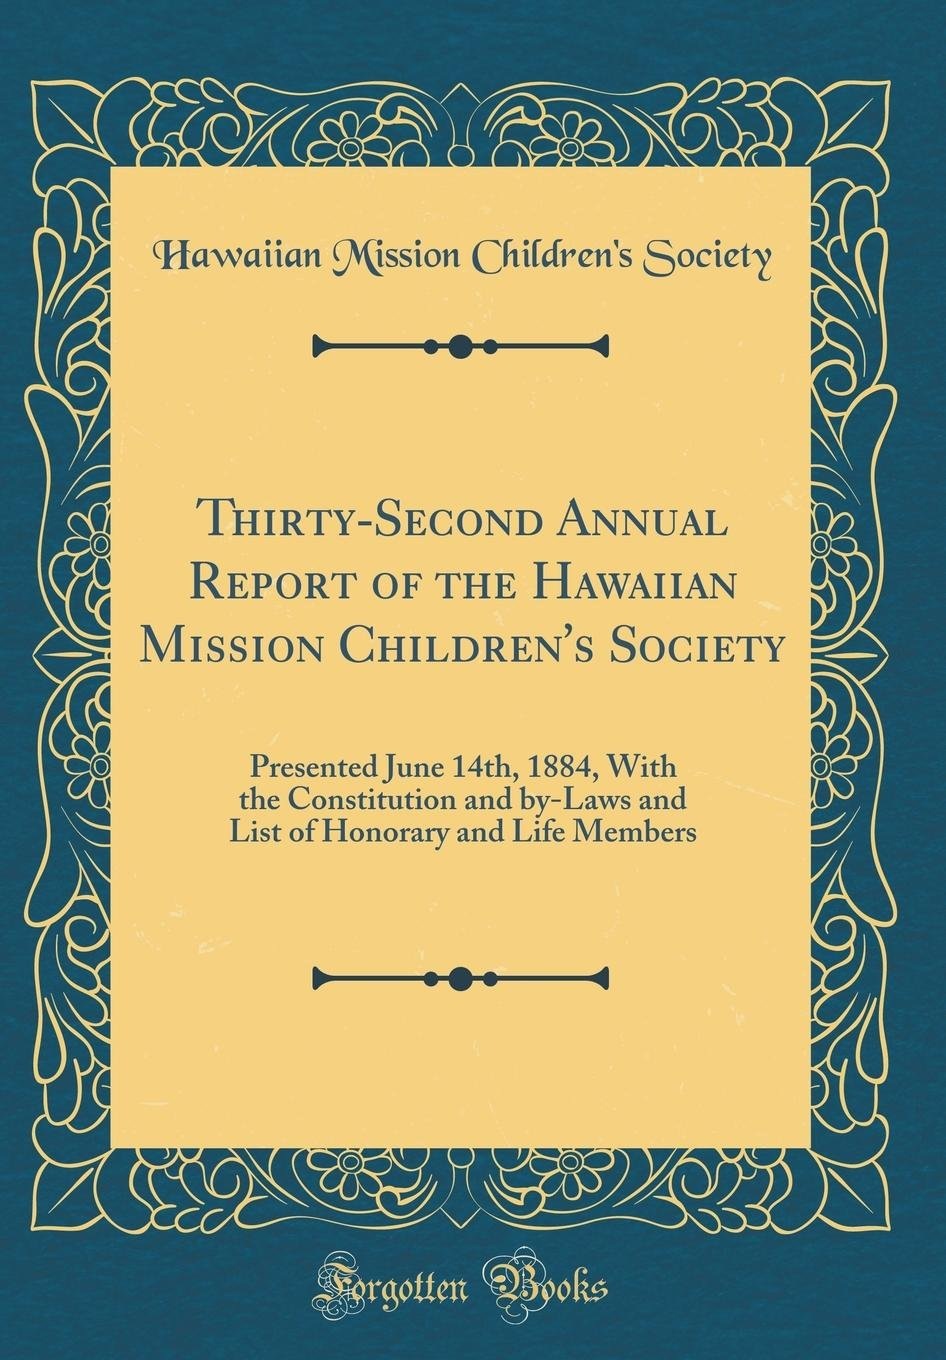 Thirty-Second Annual Report of the Hawaiian Mission Children's Society: Presented June 14th, 1884, with the Constitution and By-Laws and List of Honorary and Life Members (Classic Reprint) pdf epub